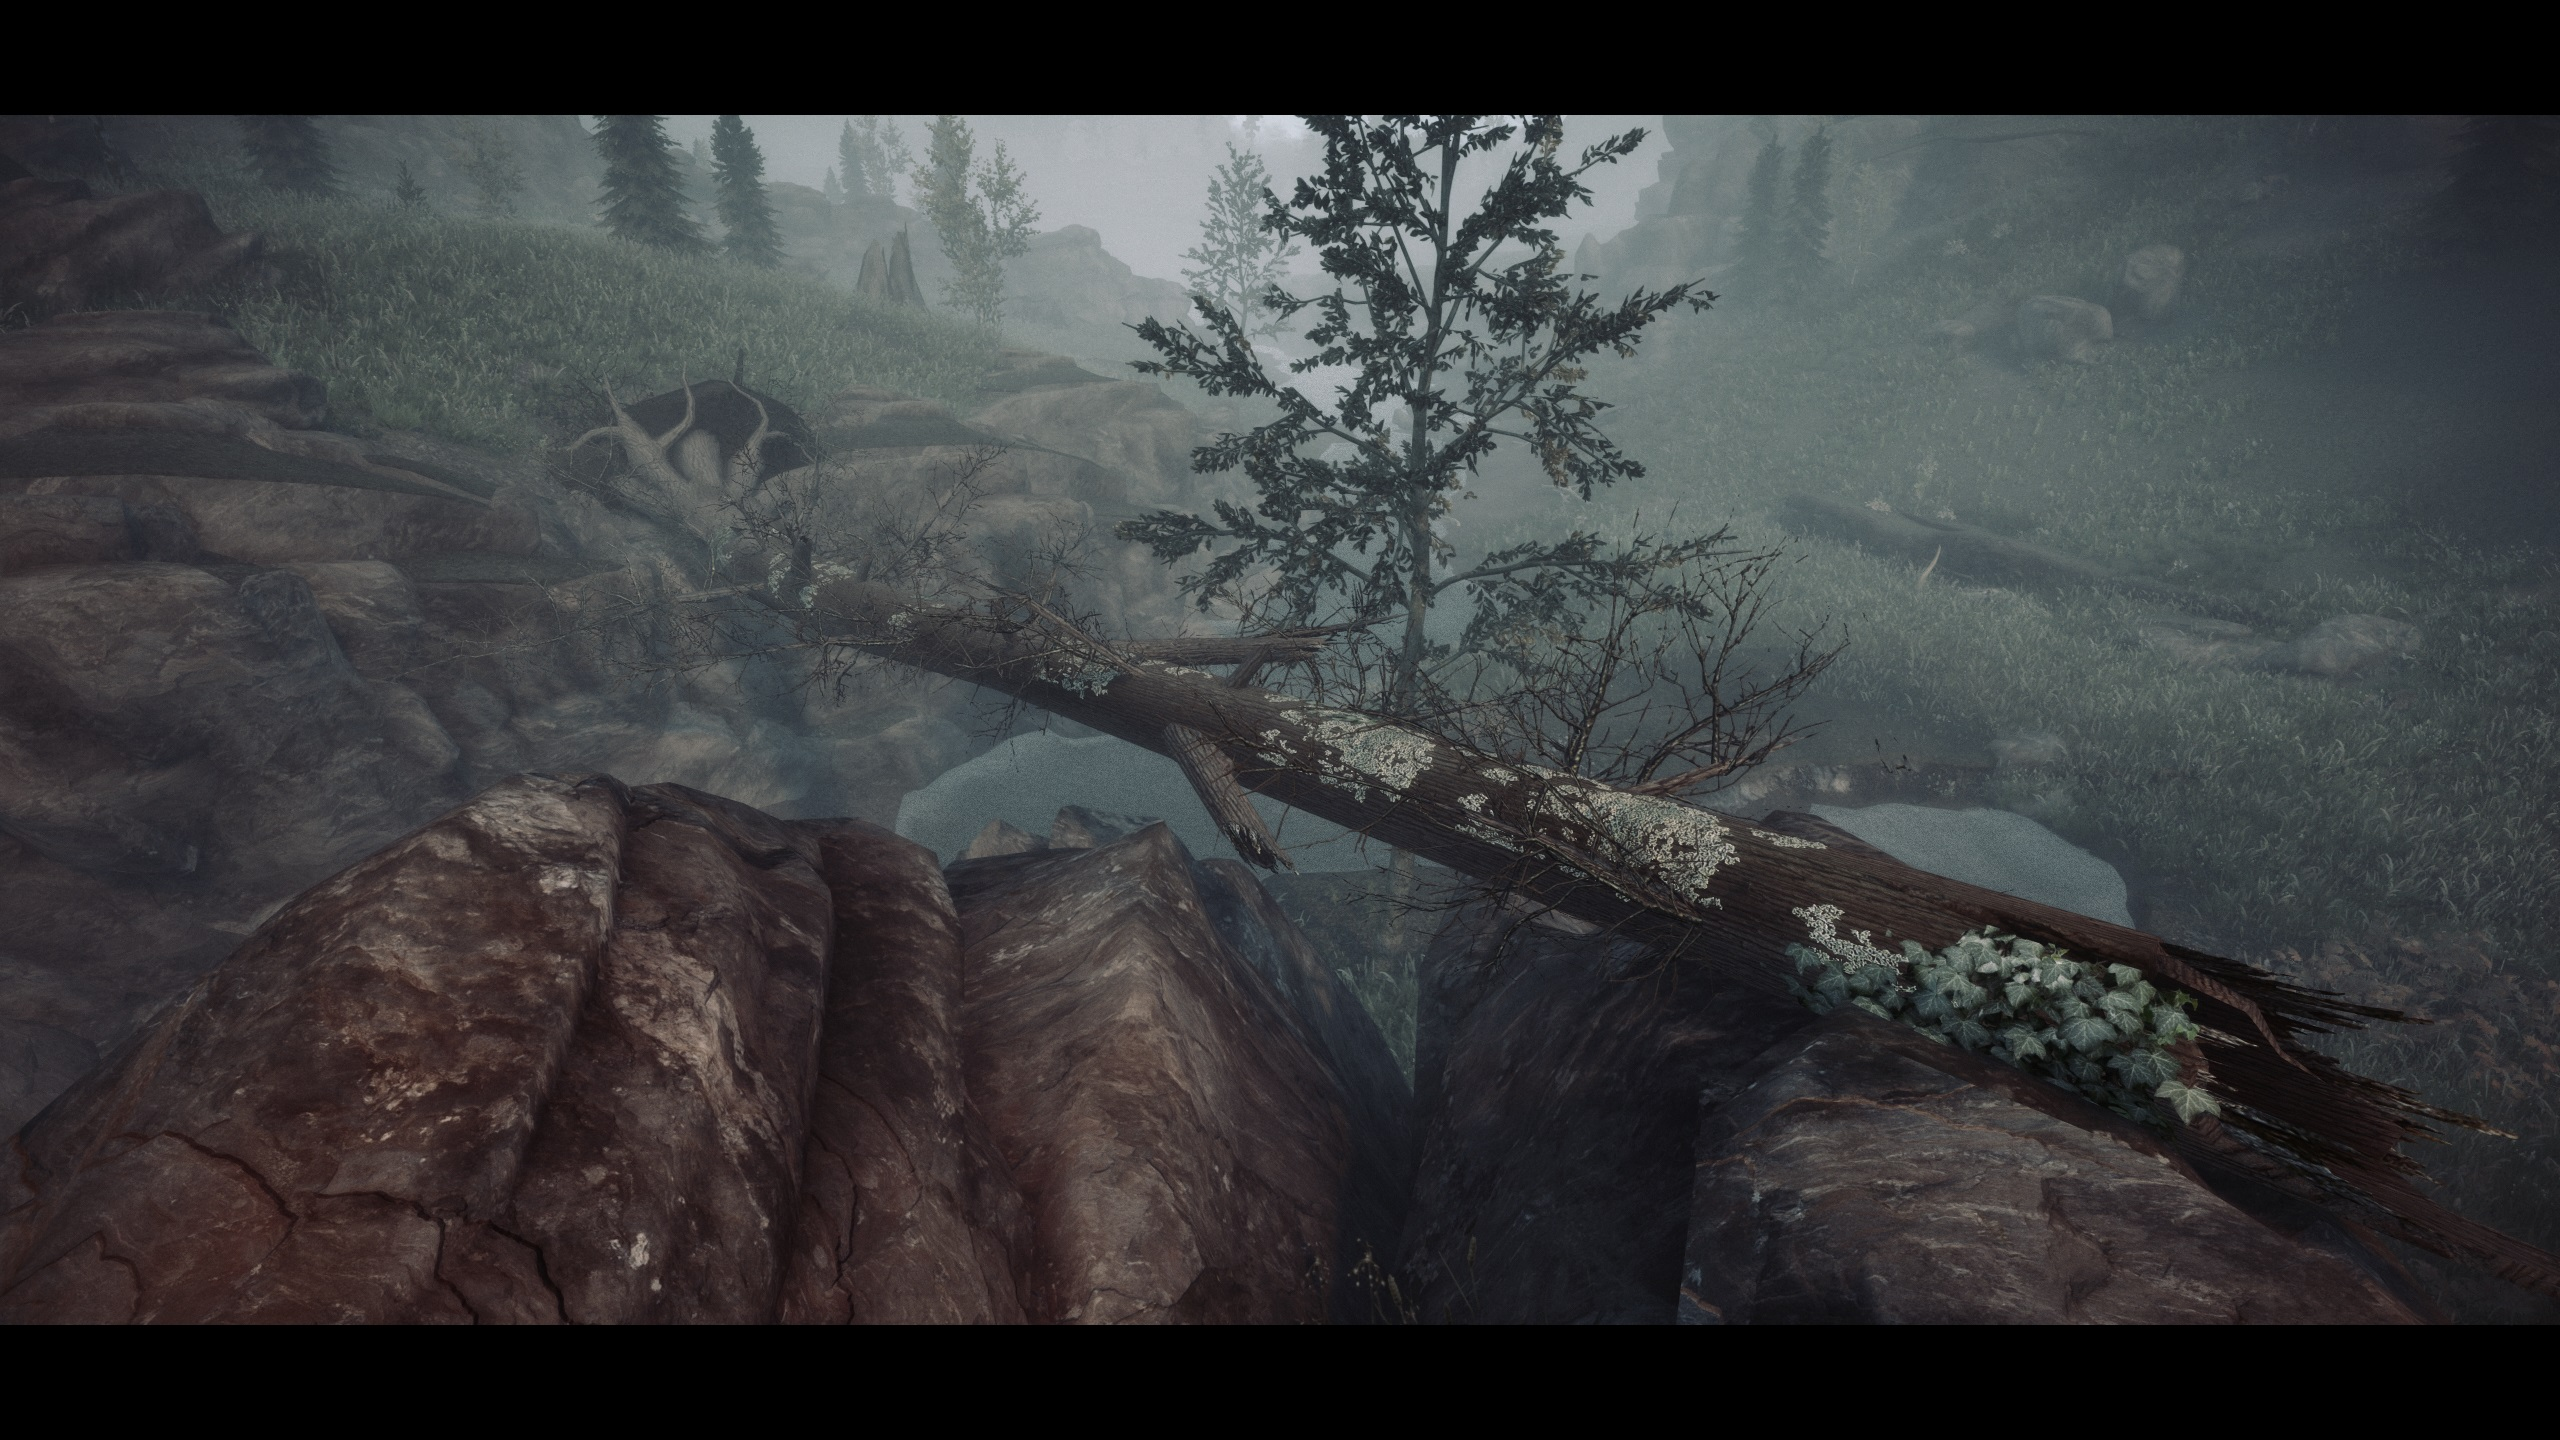 Skyrim Special Edition FleshFX & Ominous ENB Mod Offers